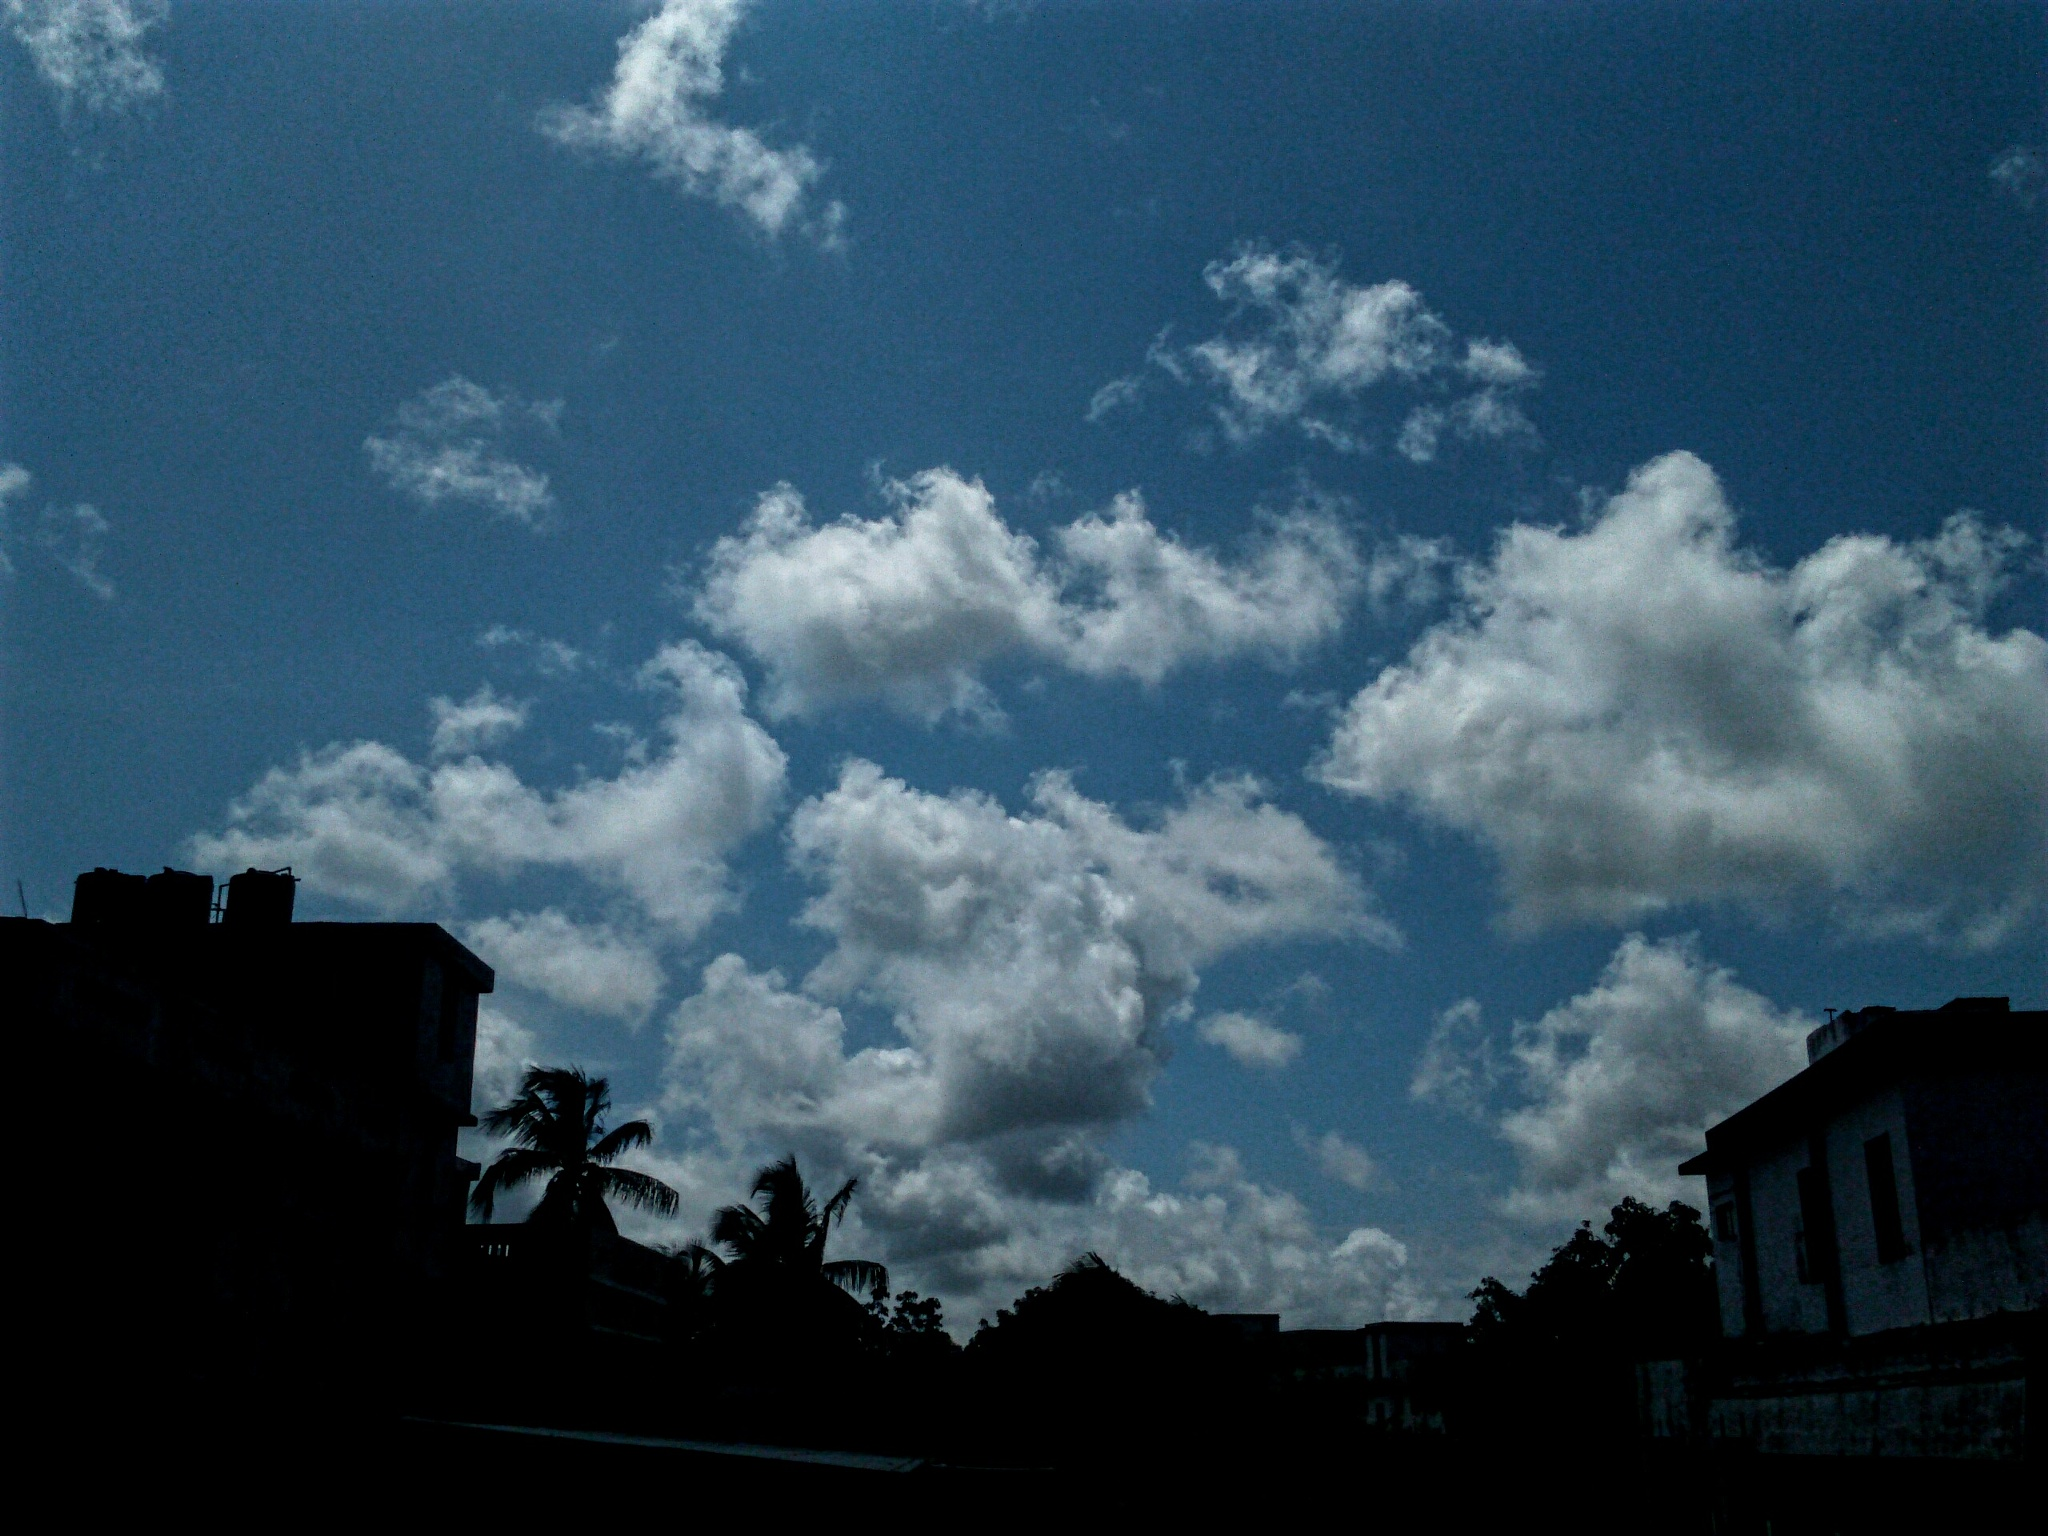 White clouds on blue sky  by soumitramaity39